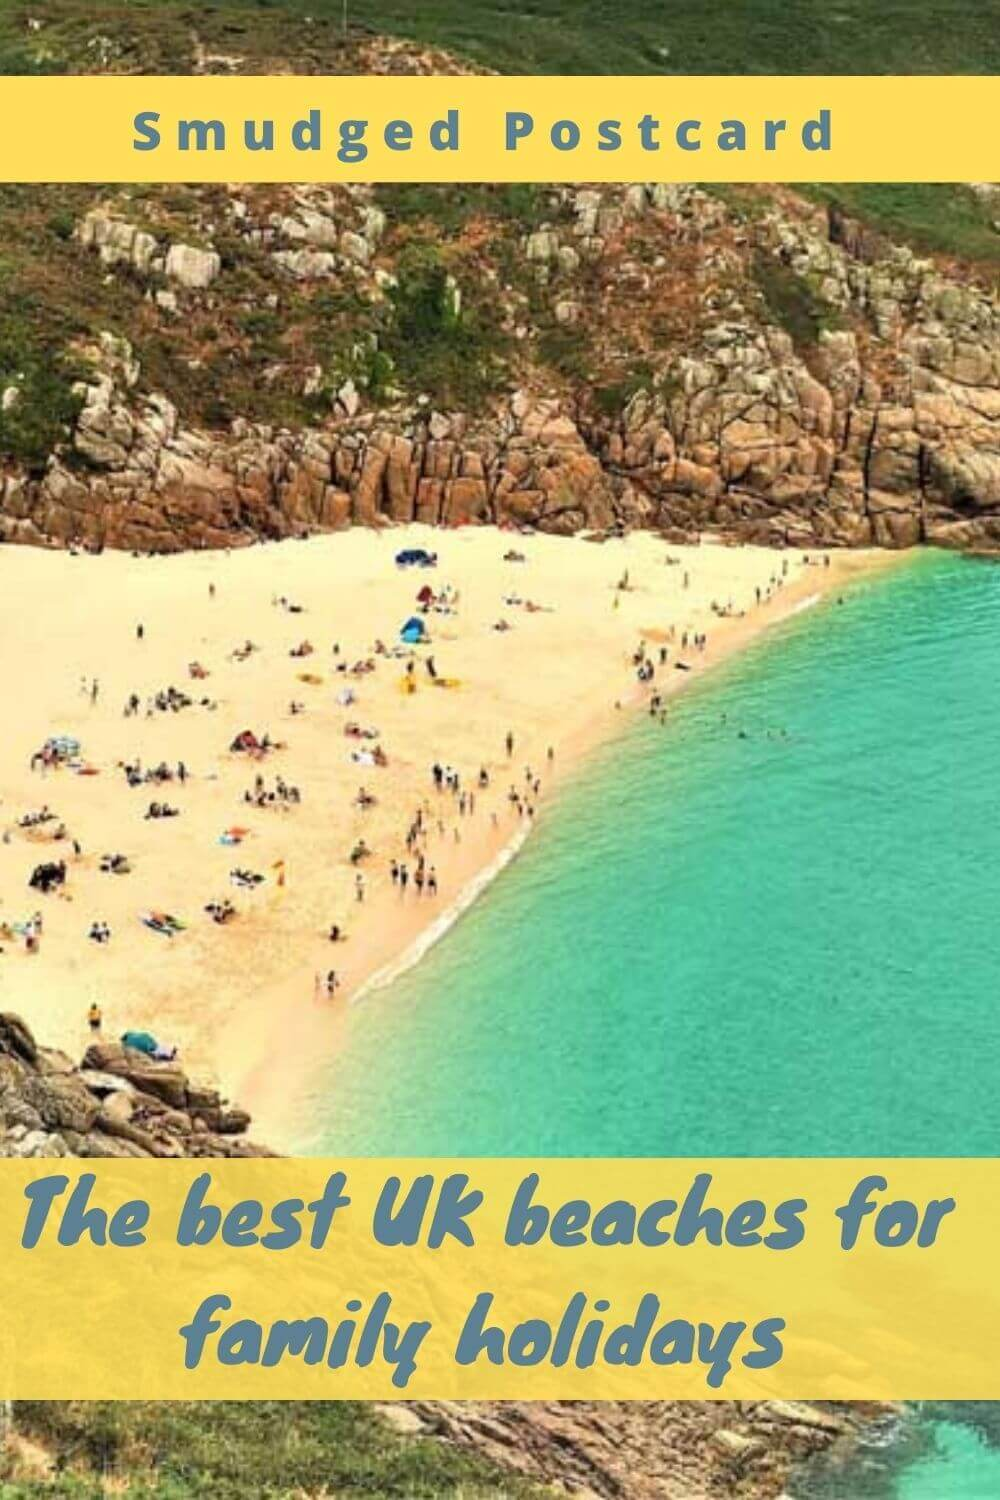 The best UK beaches for family holidays